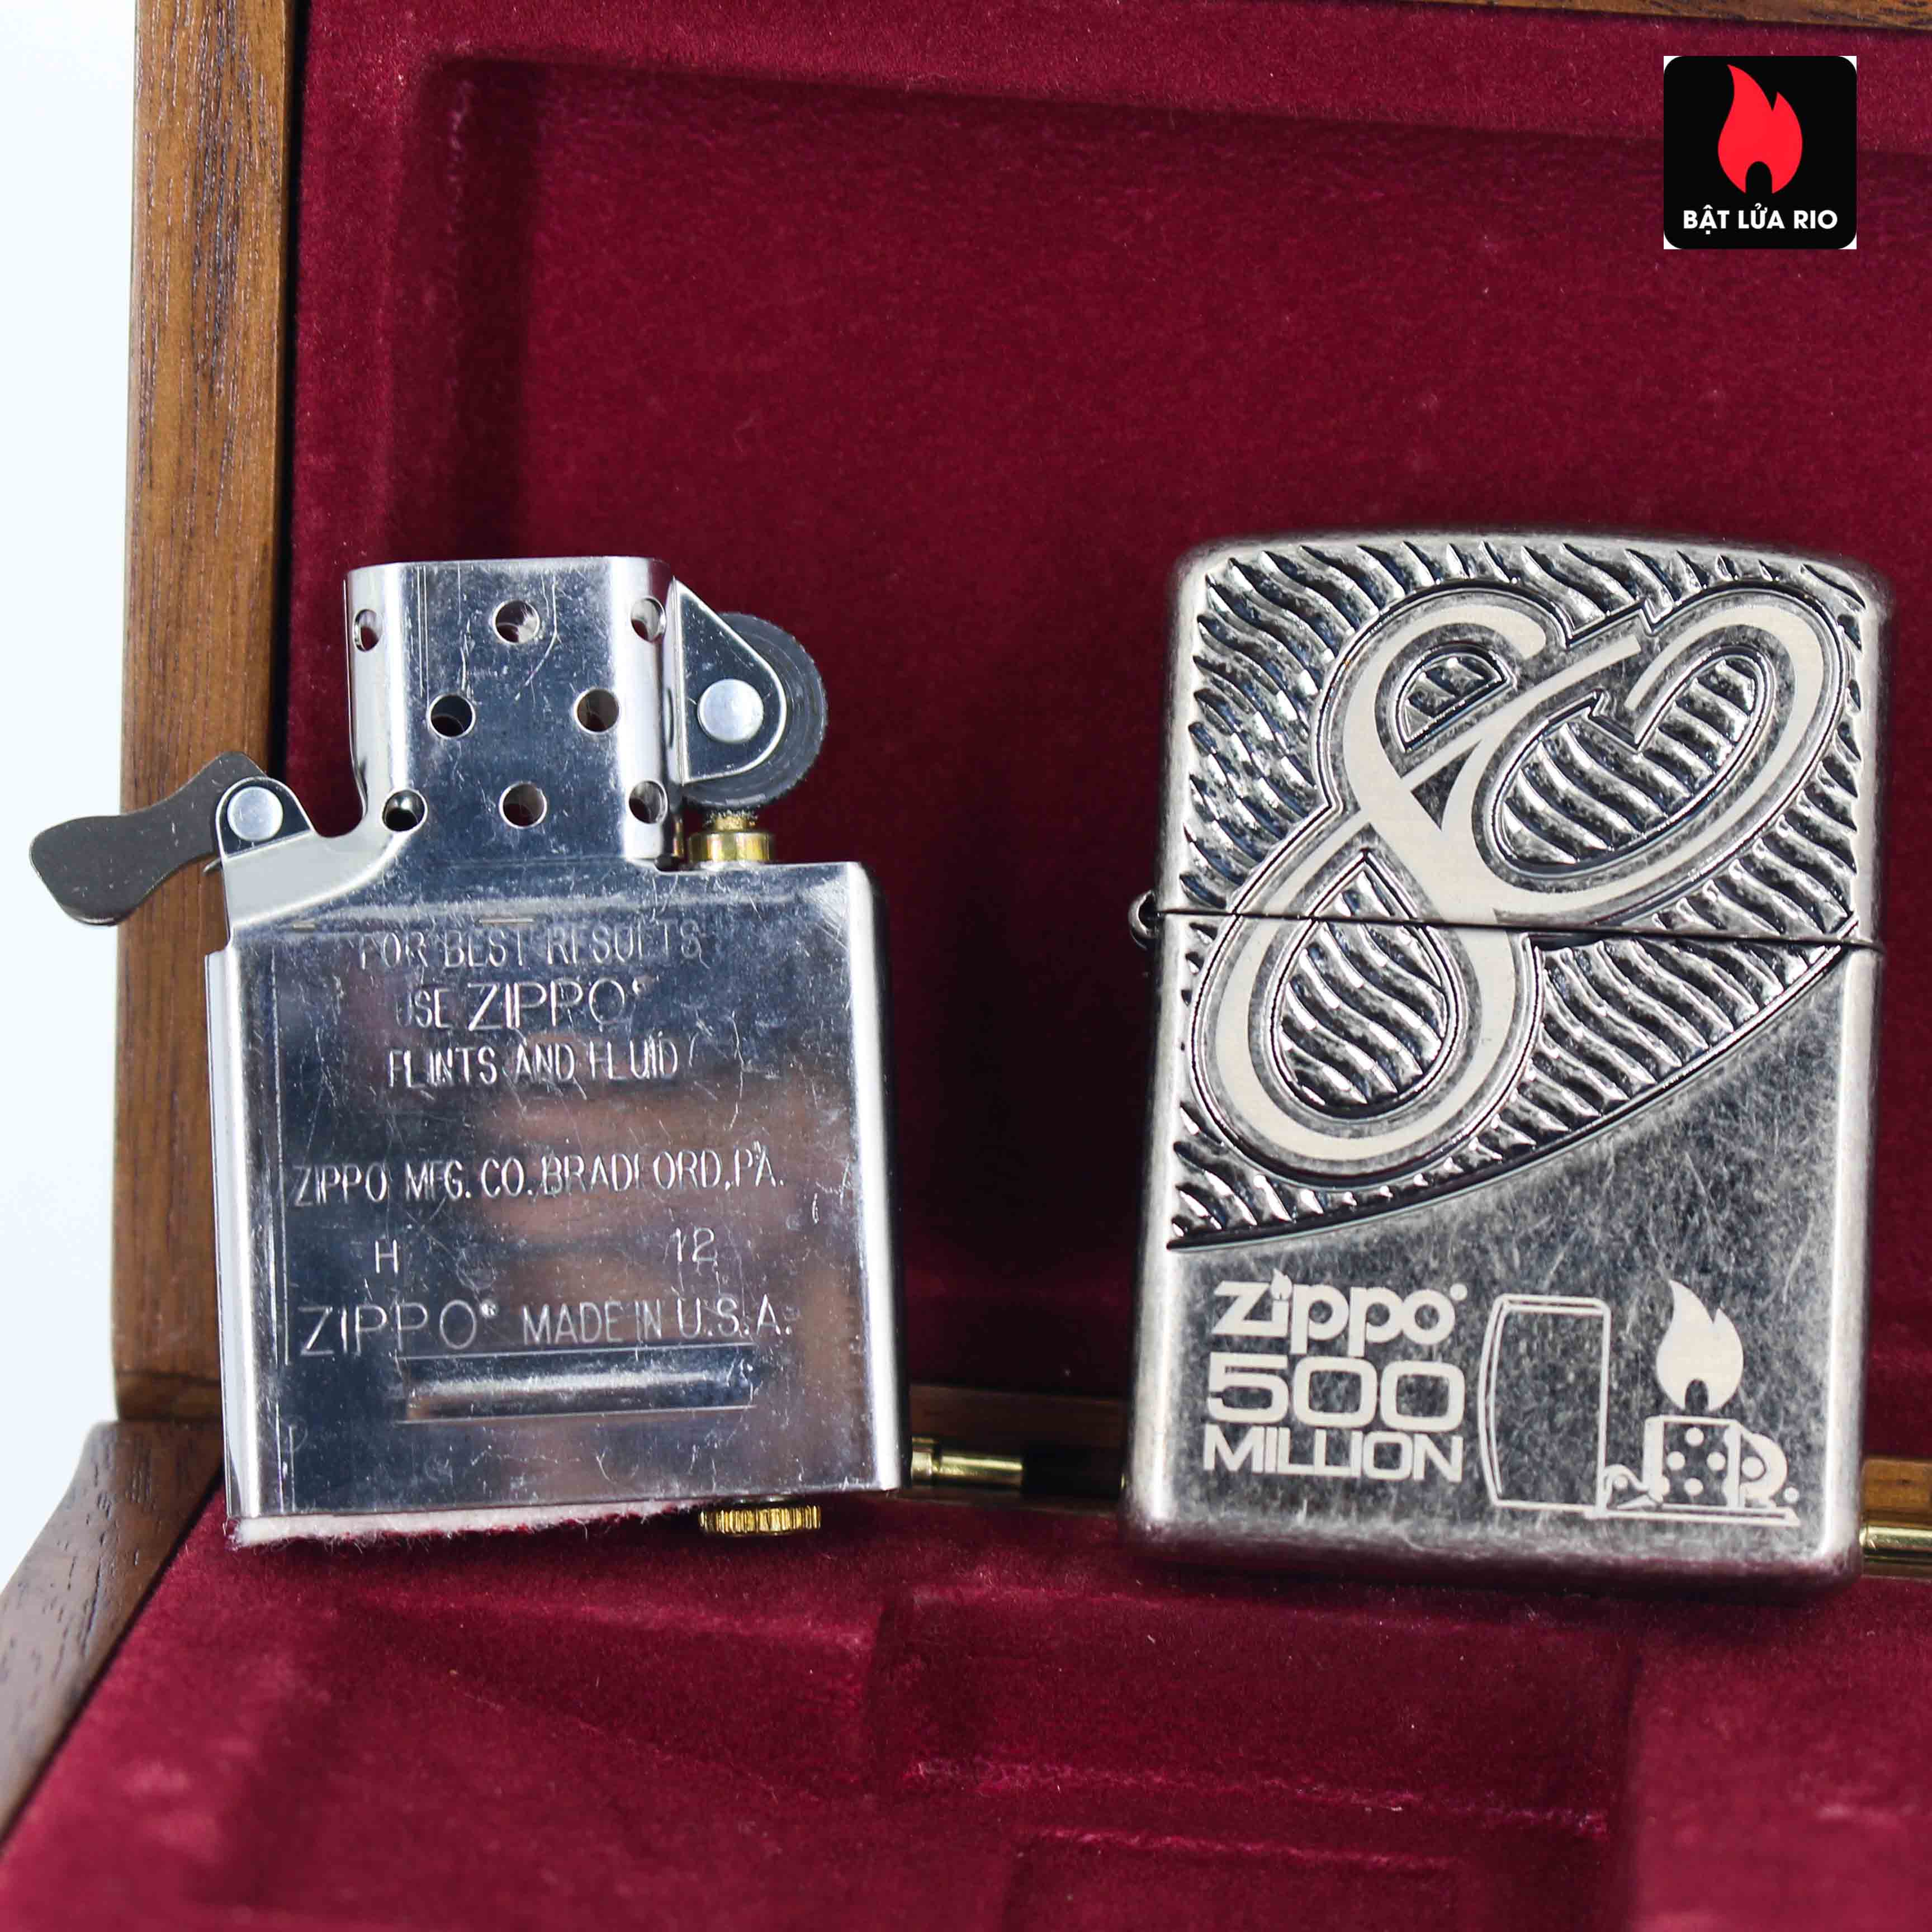 Zippo 2012 - 80th Anniversary and 500 Million - Limited 405/500 6